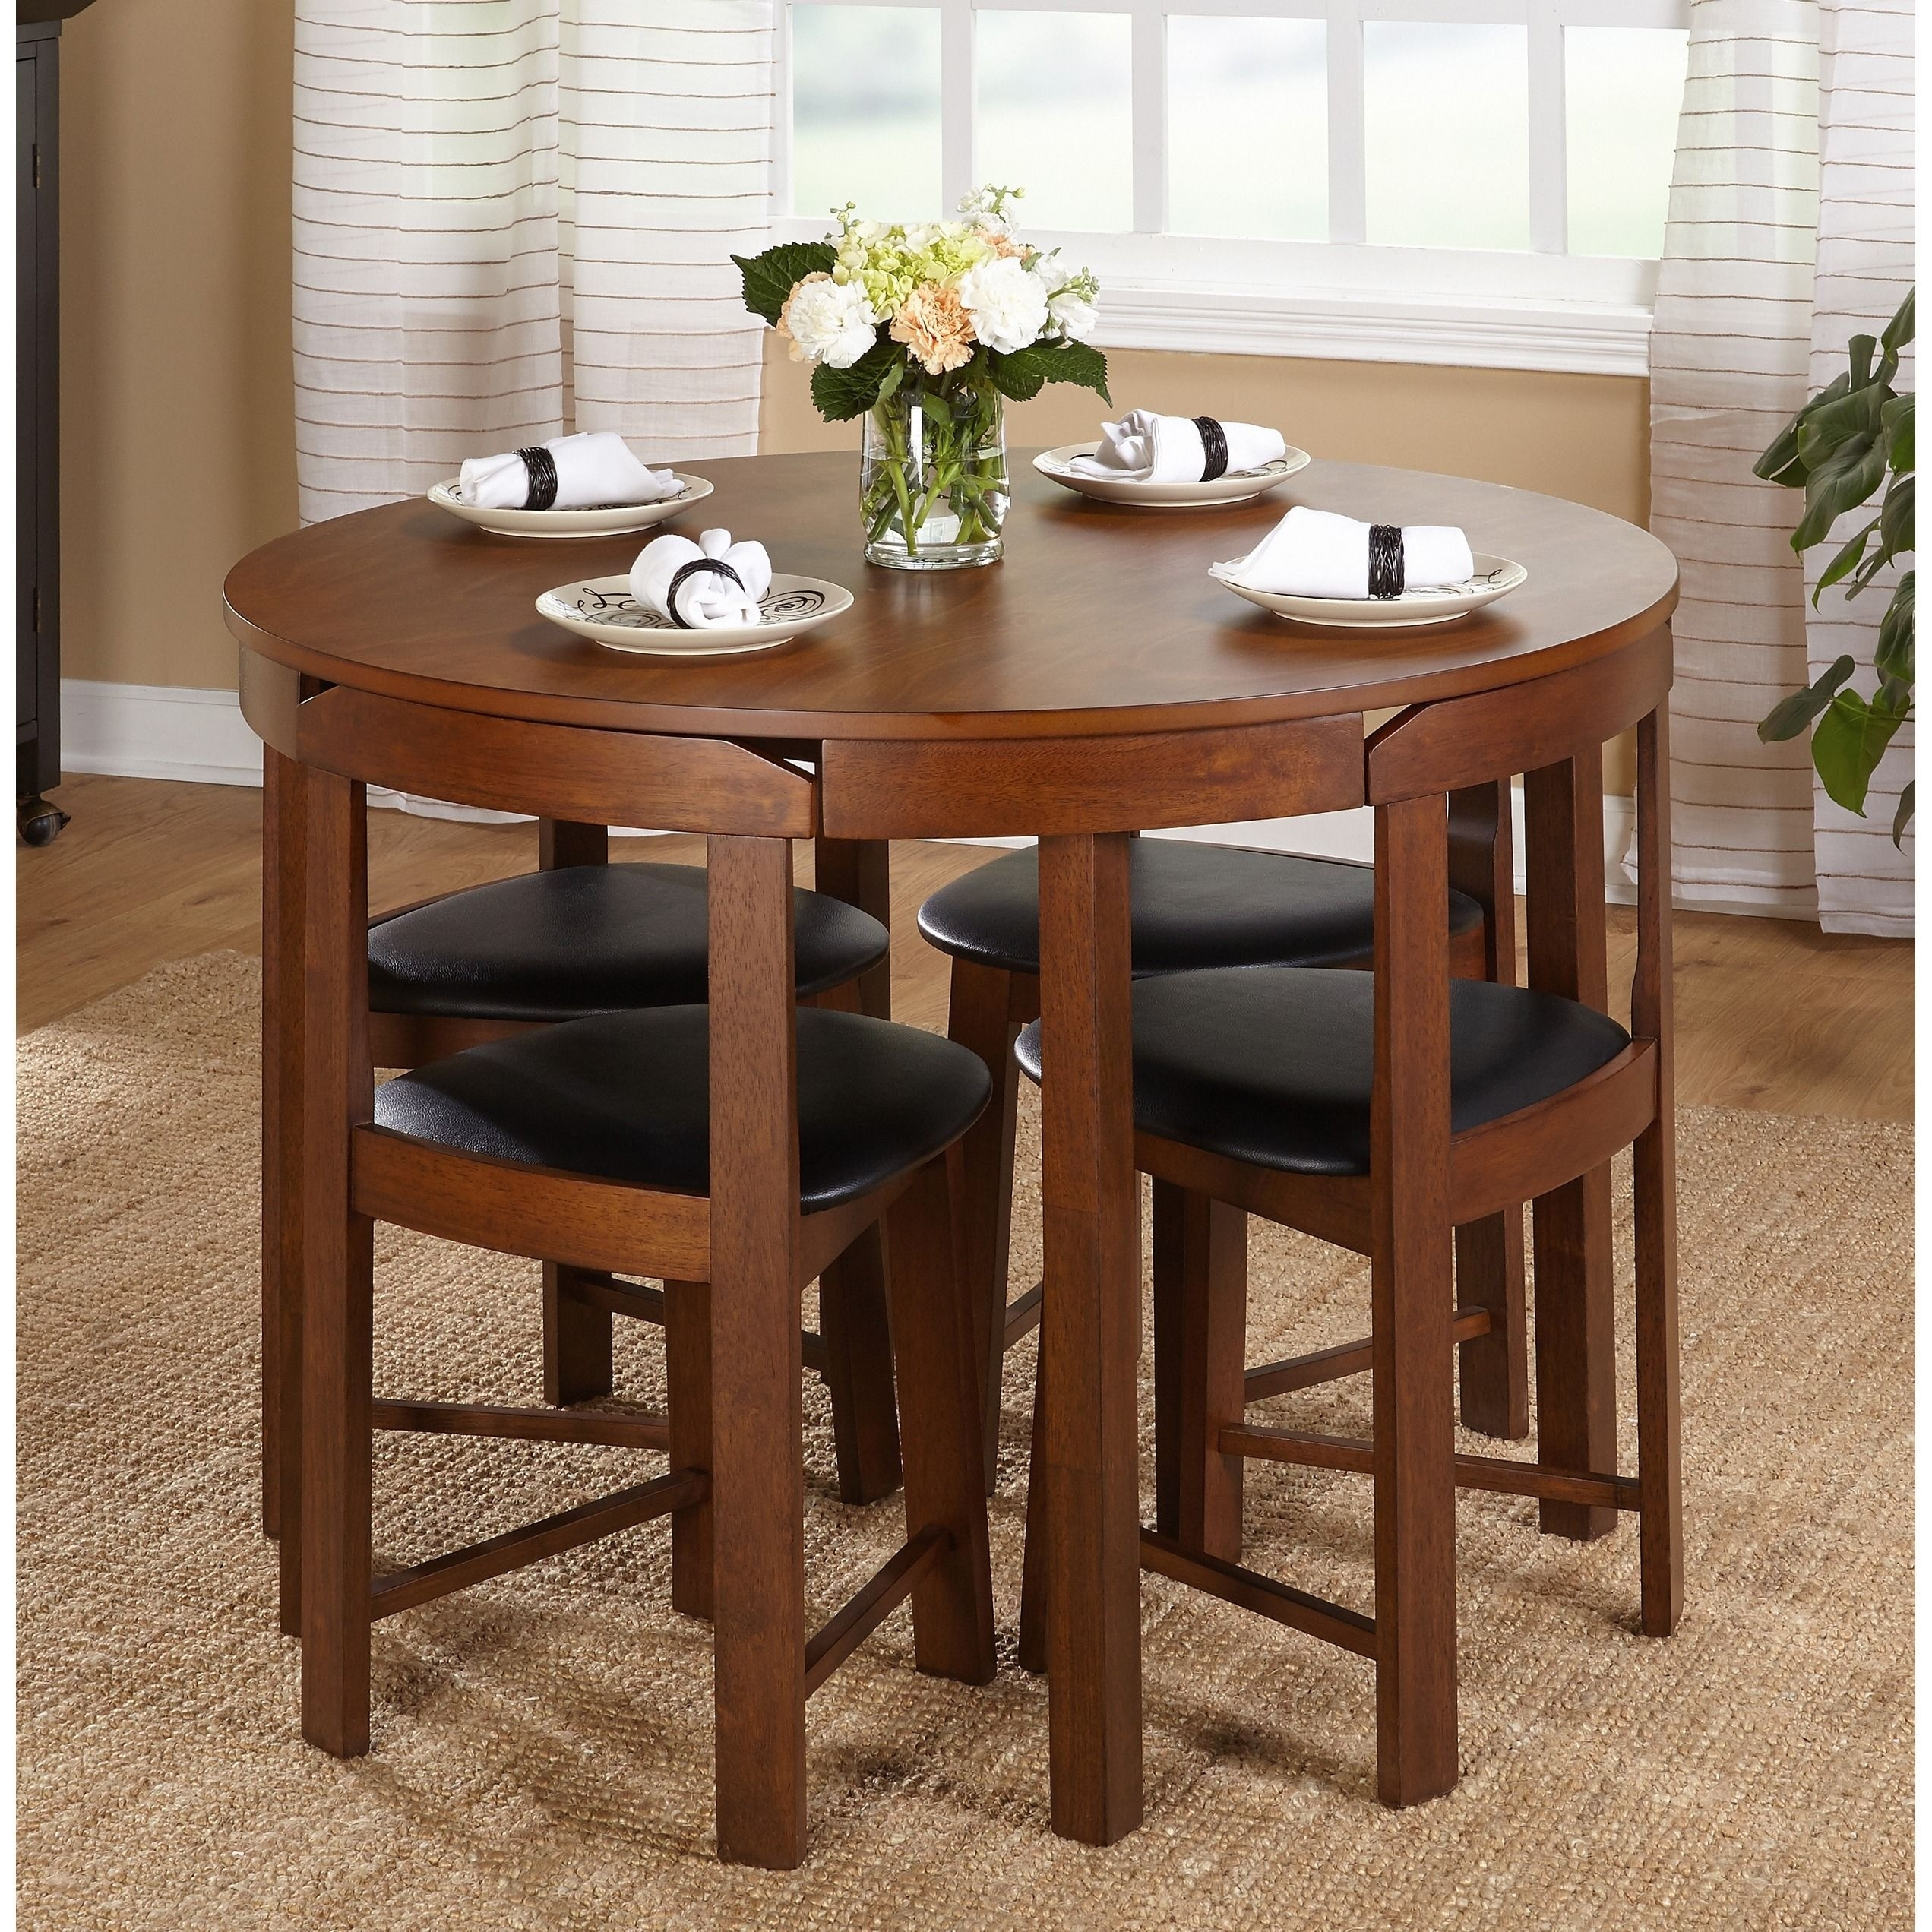 The 5 Piece Tobey Compact Dining Setsimple Living Offers Four Intended For 2018 Valencia 5 Piece Round Dining Sets With Uph Seat Side Chairs (Image 16 of 20)